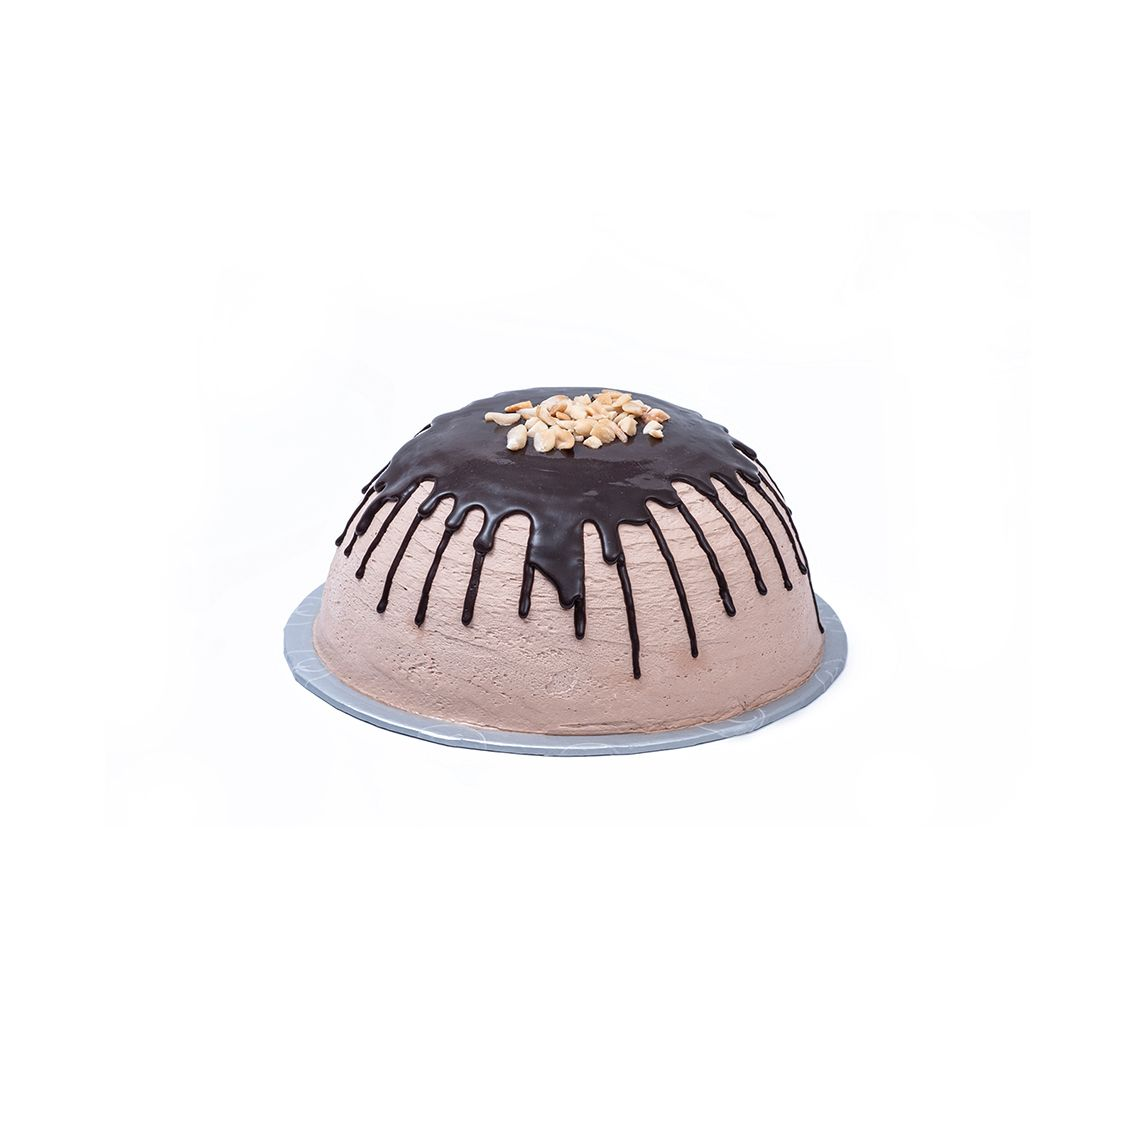 Kitchen Cuisine Default Category Dulce de Leche Ice Cream Bombe